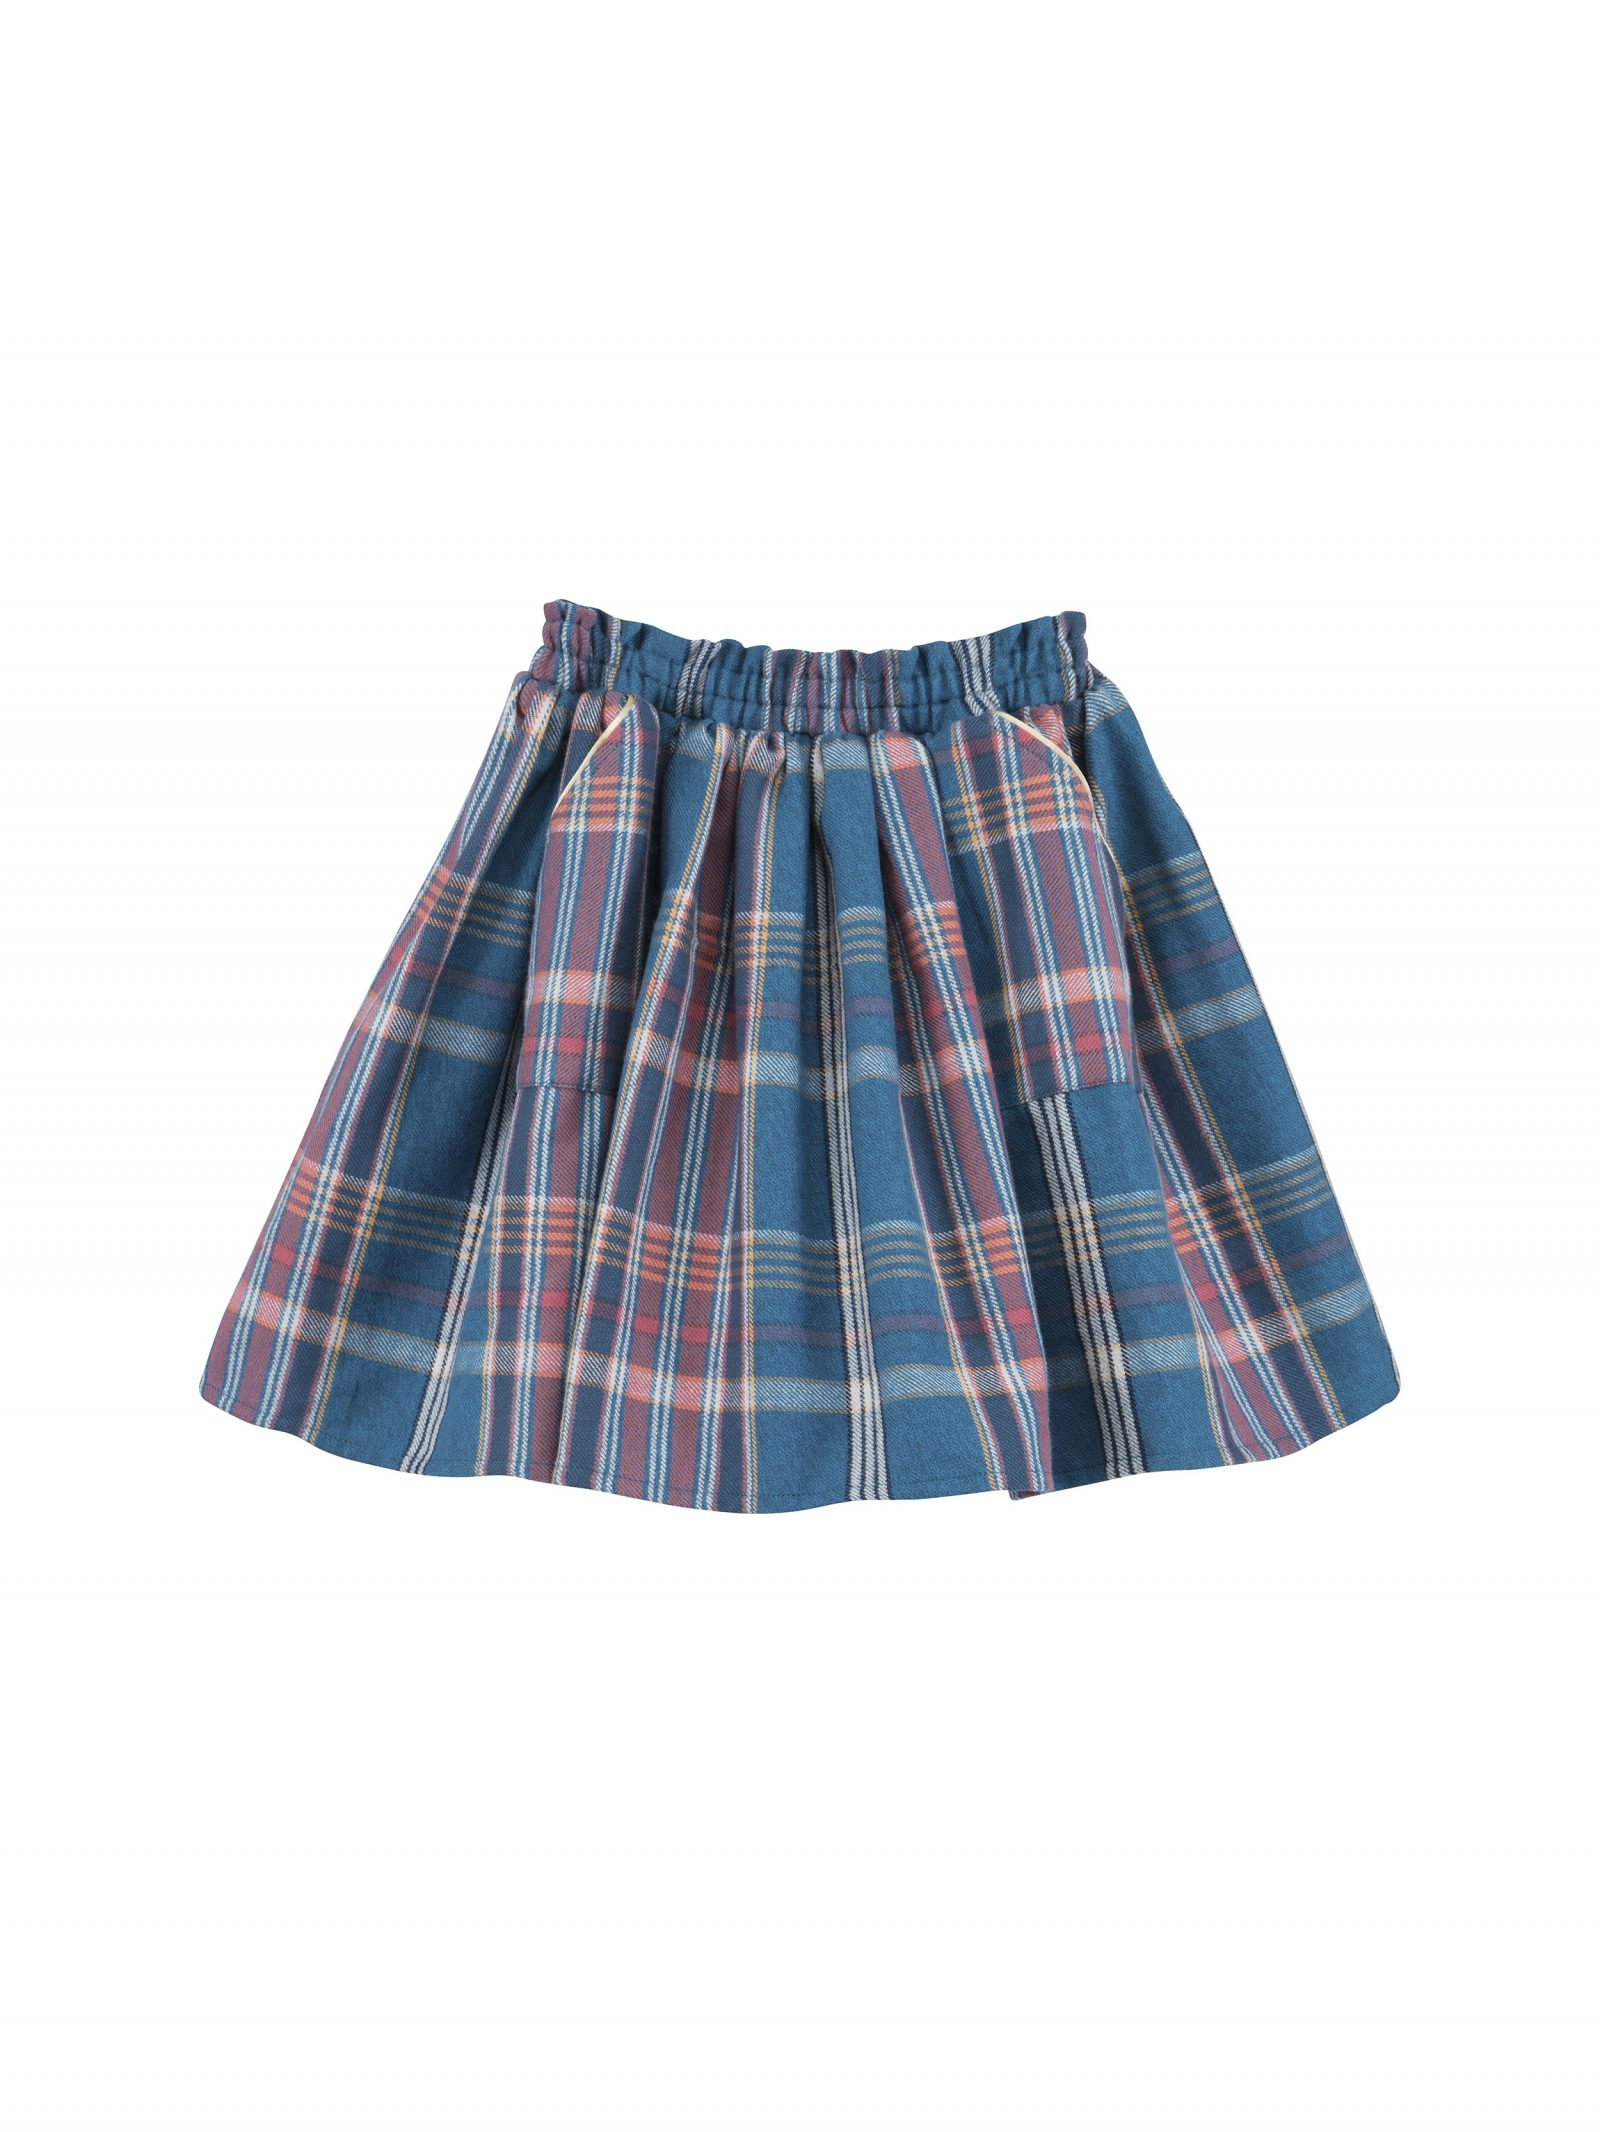 Joanna Plaid Skirt in Teal - Front